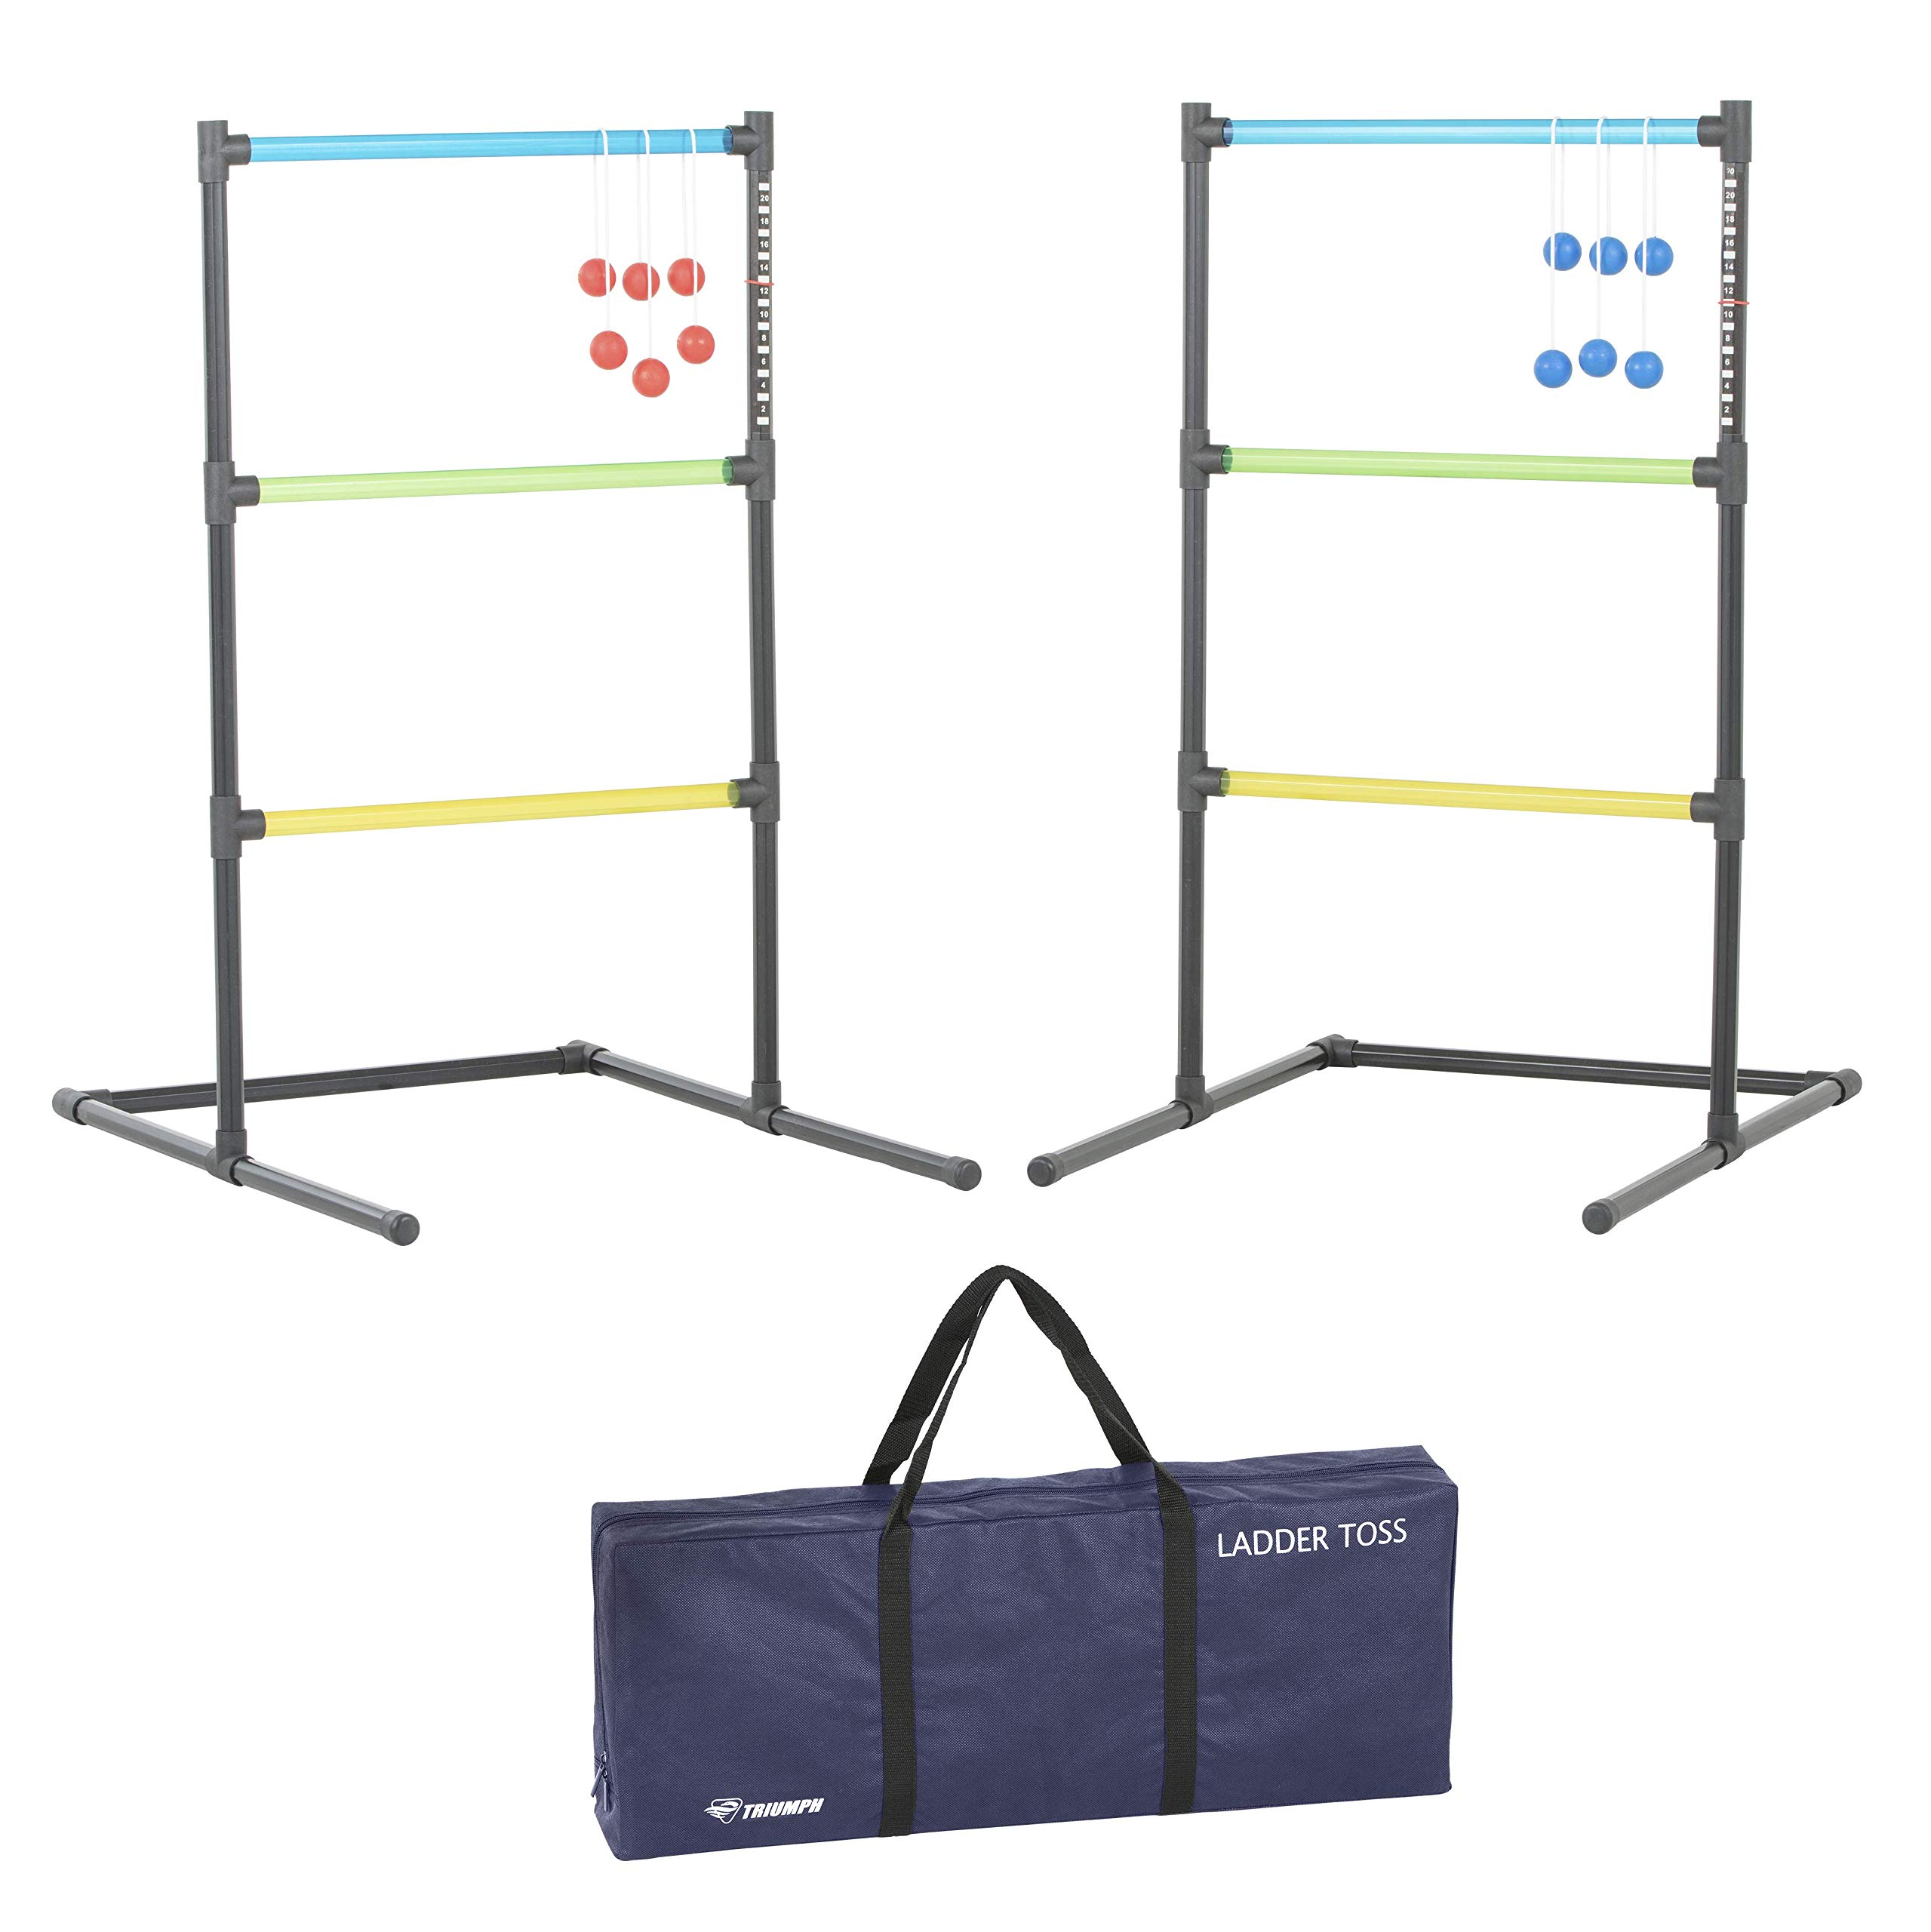 Triumph Ladder Toss Outdoor Set Requires No Tools to Assemble and Includes Six Soft Ball Bolas and Carry Bag